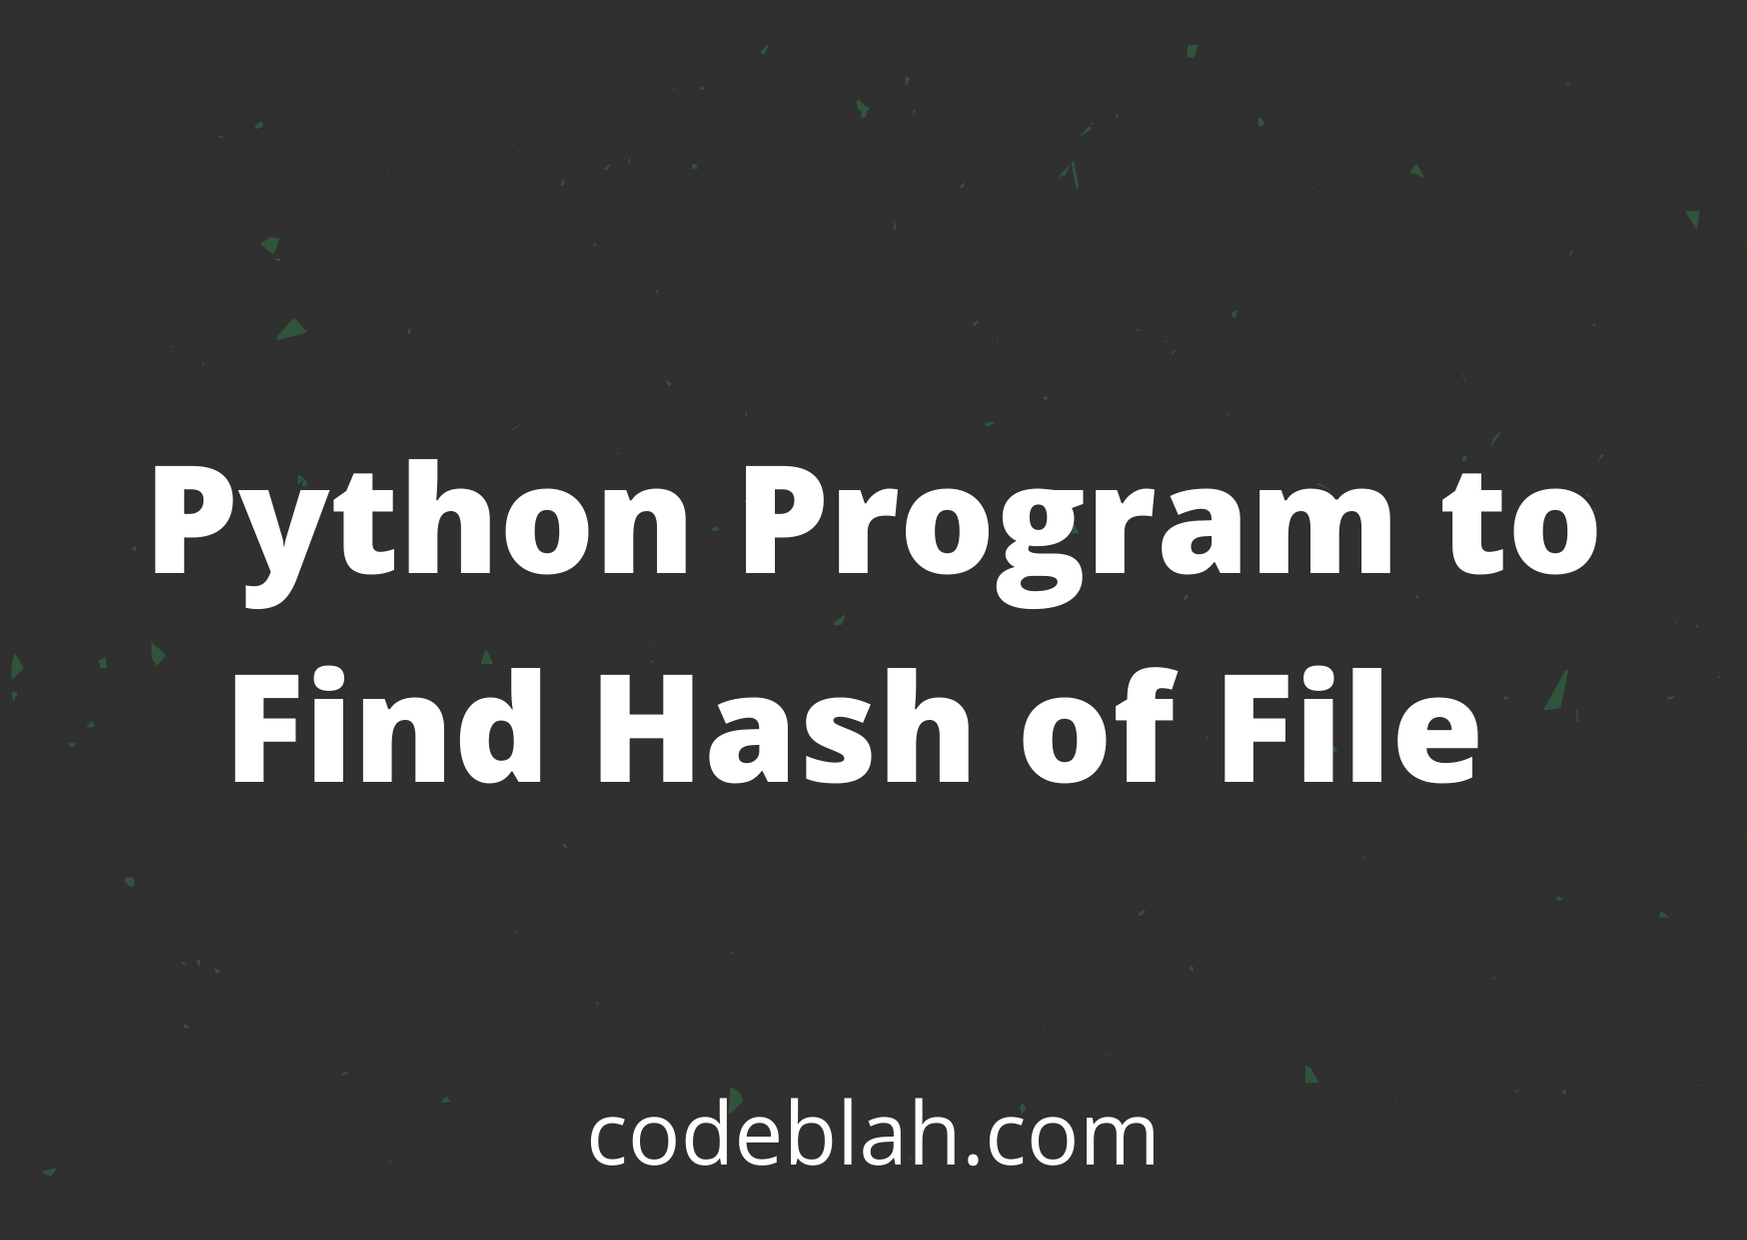 Python Program to Find Hash of File